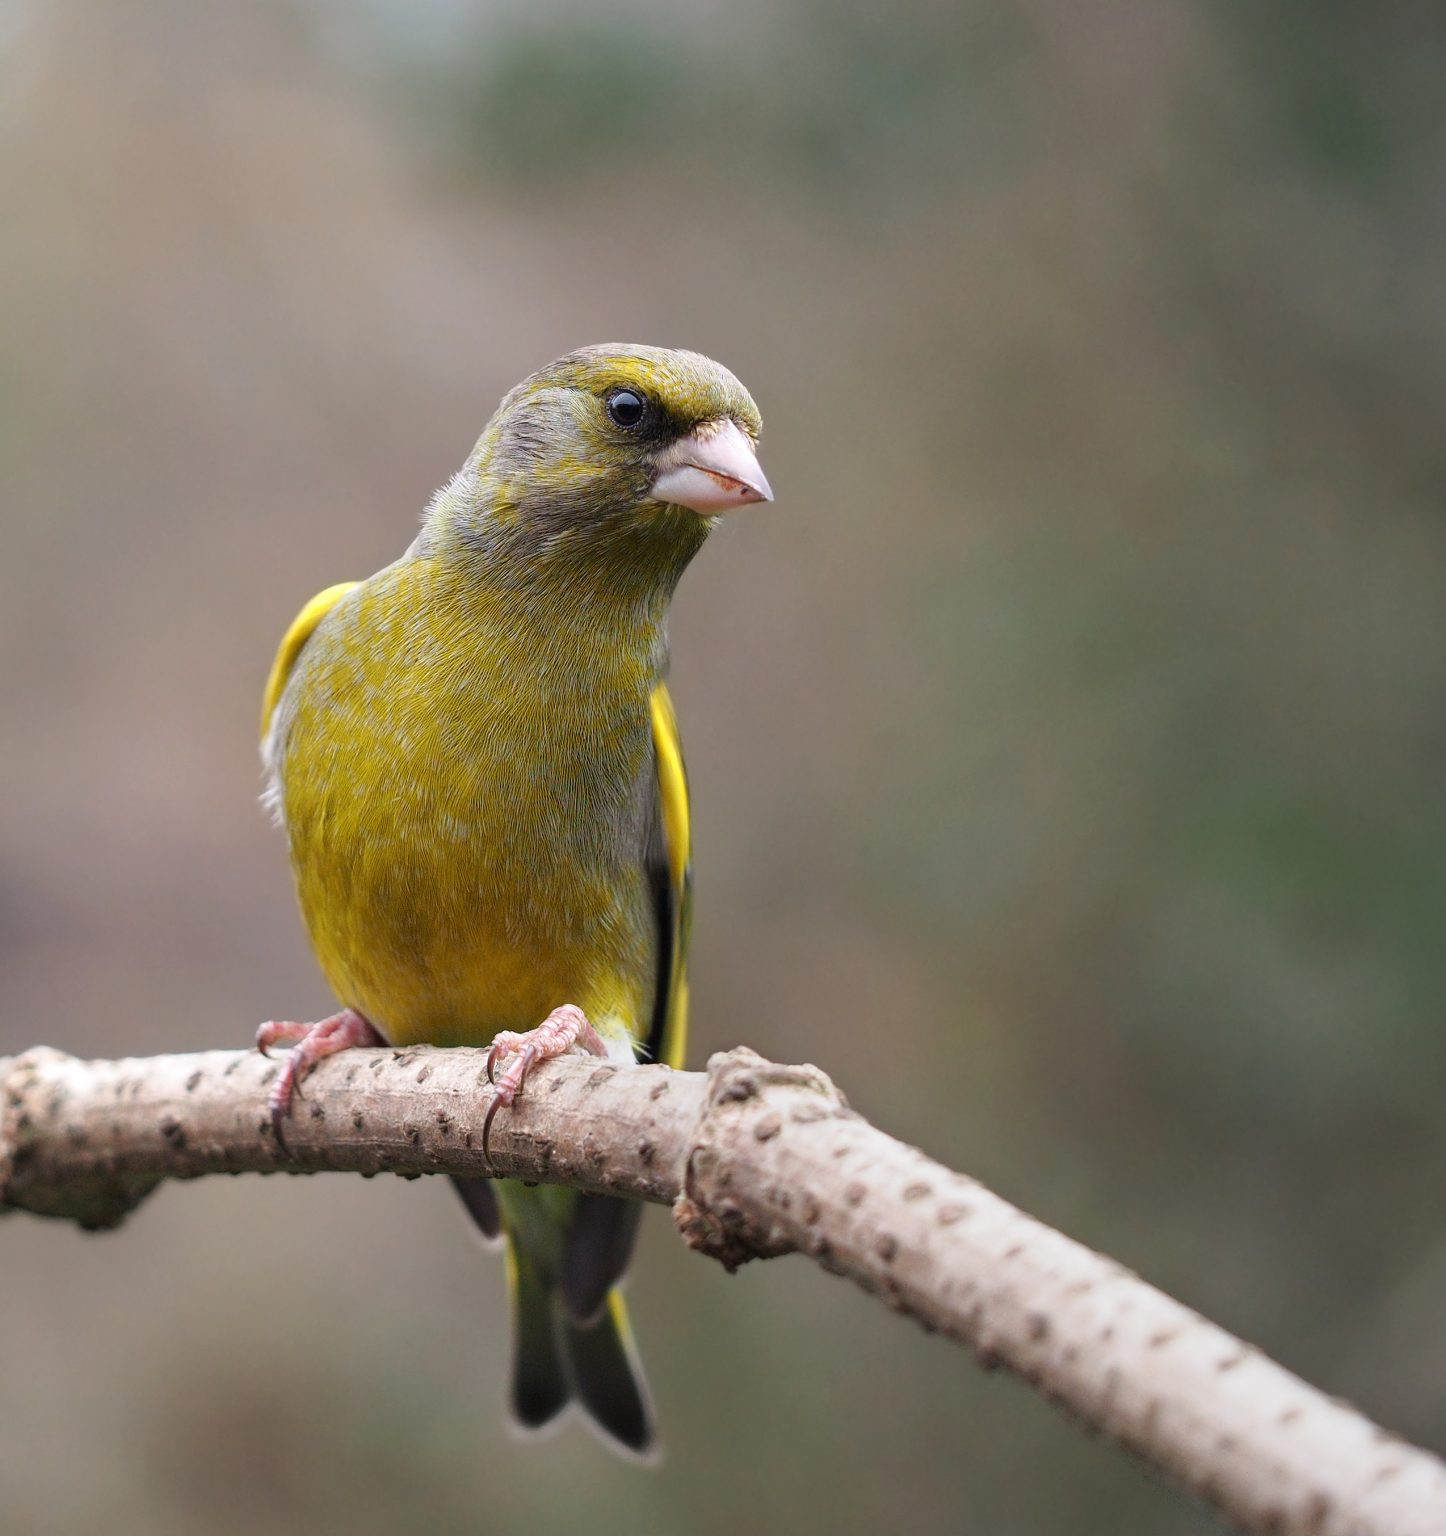 Chloris chloris mascul, European Greenfinch